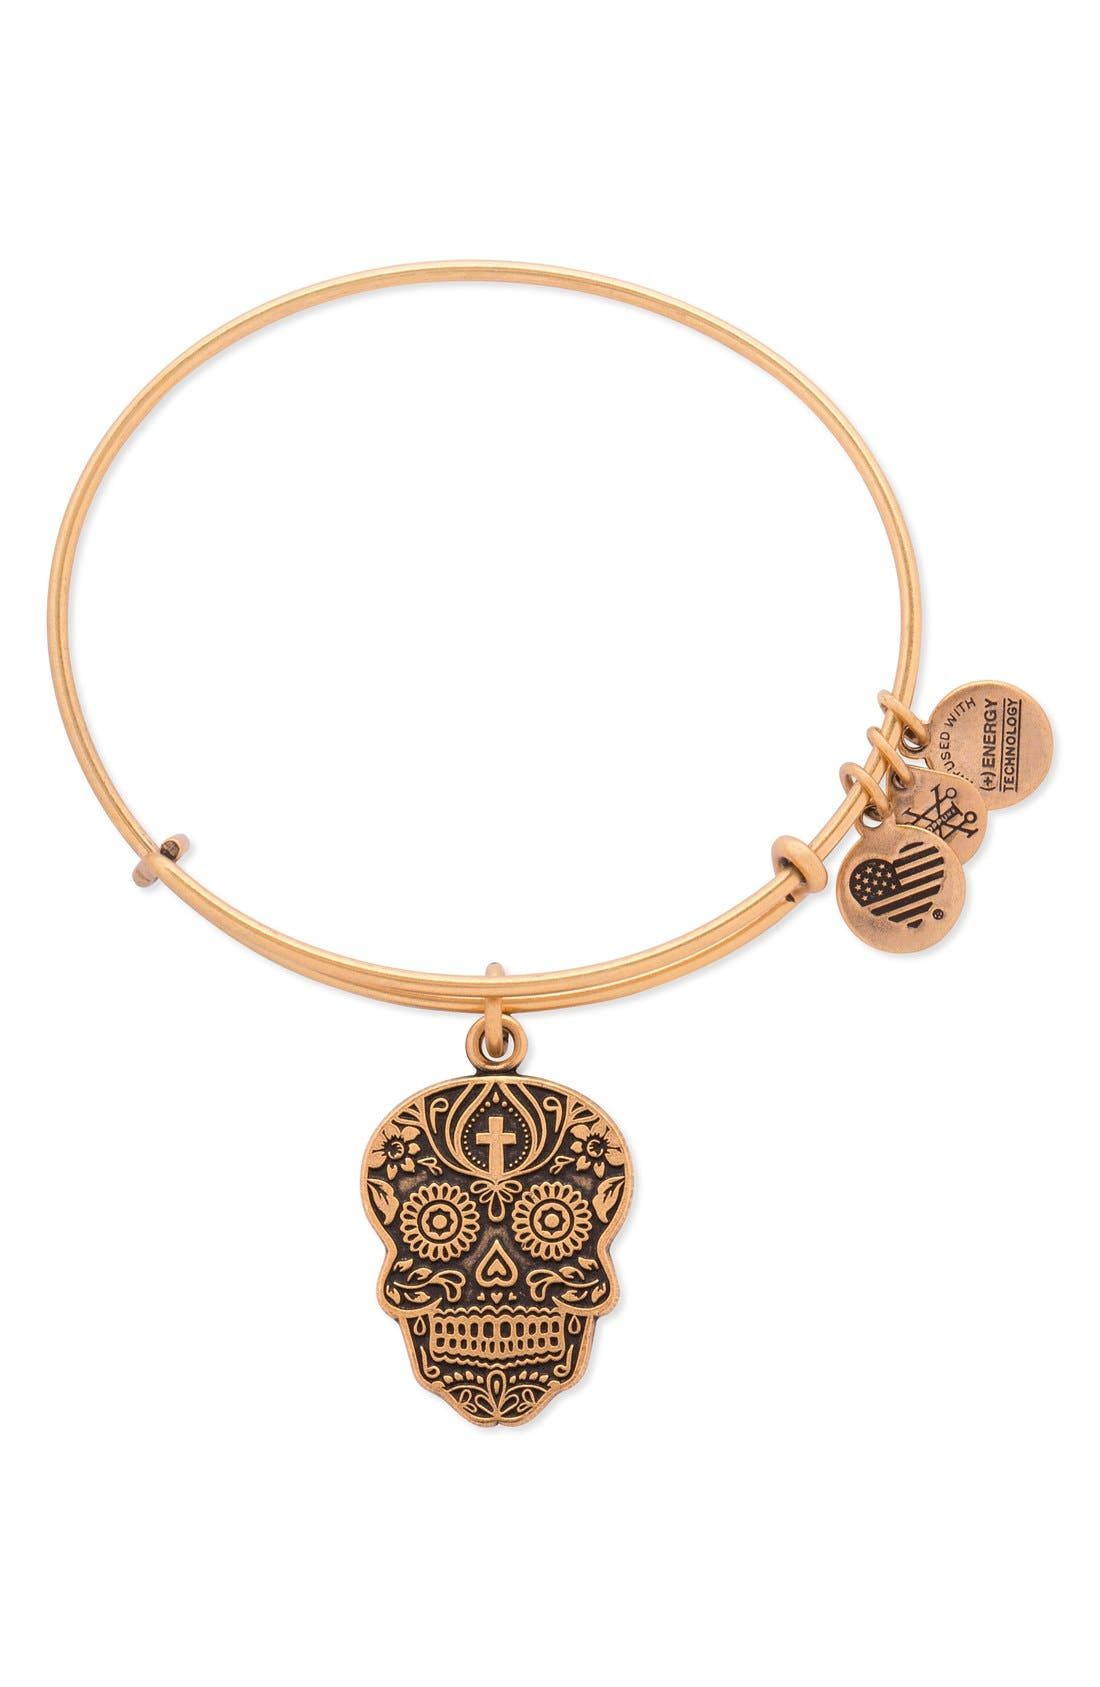 Alternate Image 1 Selected - Alex and Ani 'Calavera' Adjustable Wire Bangle